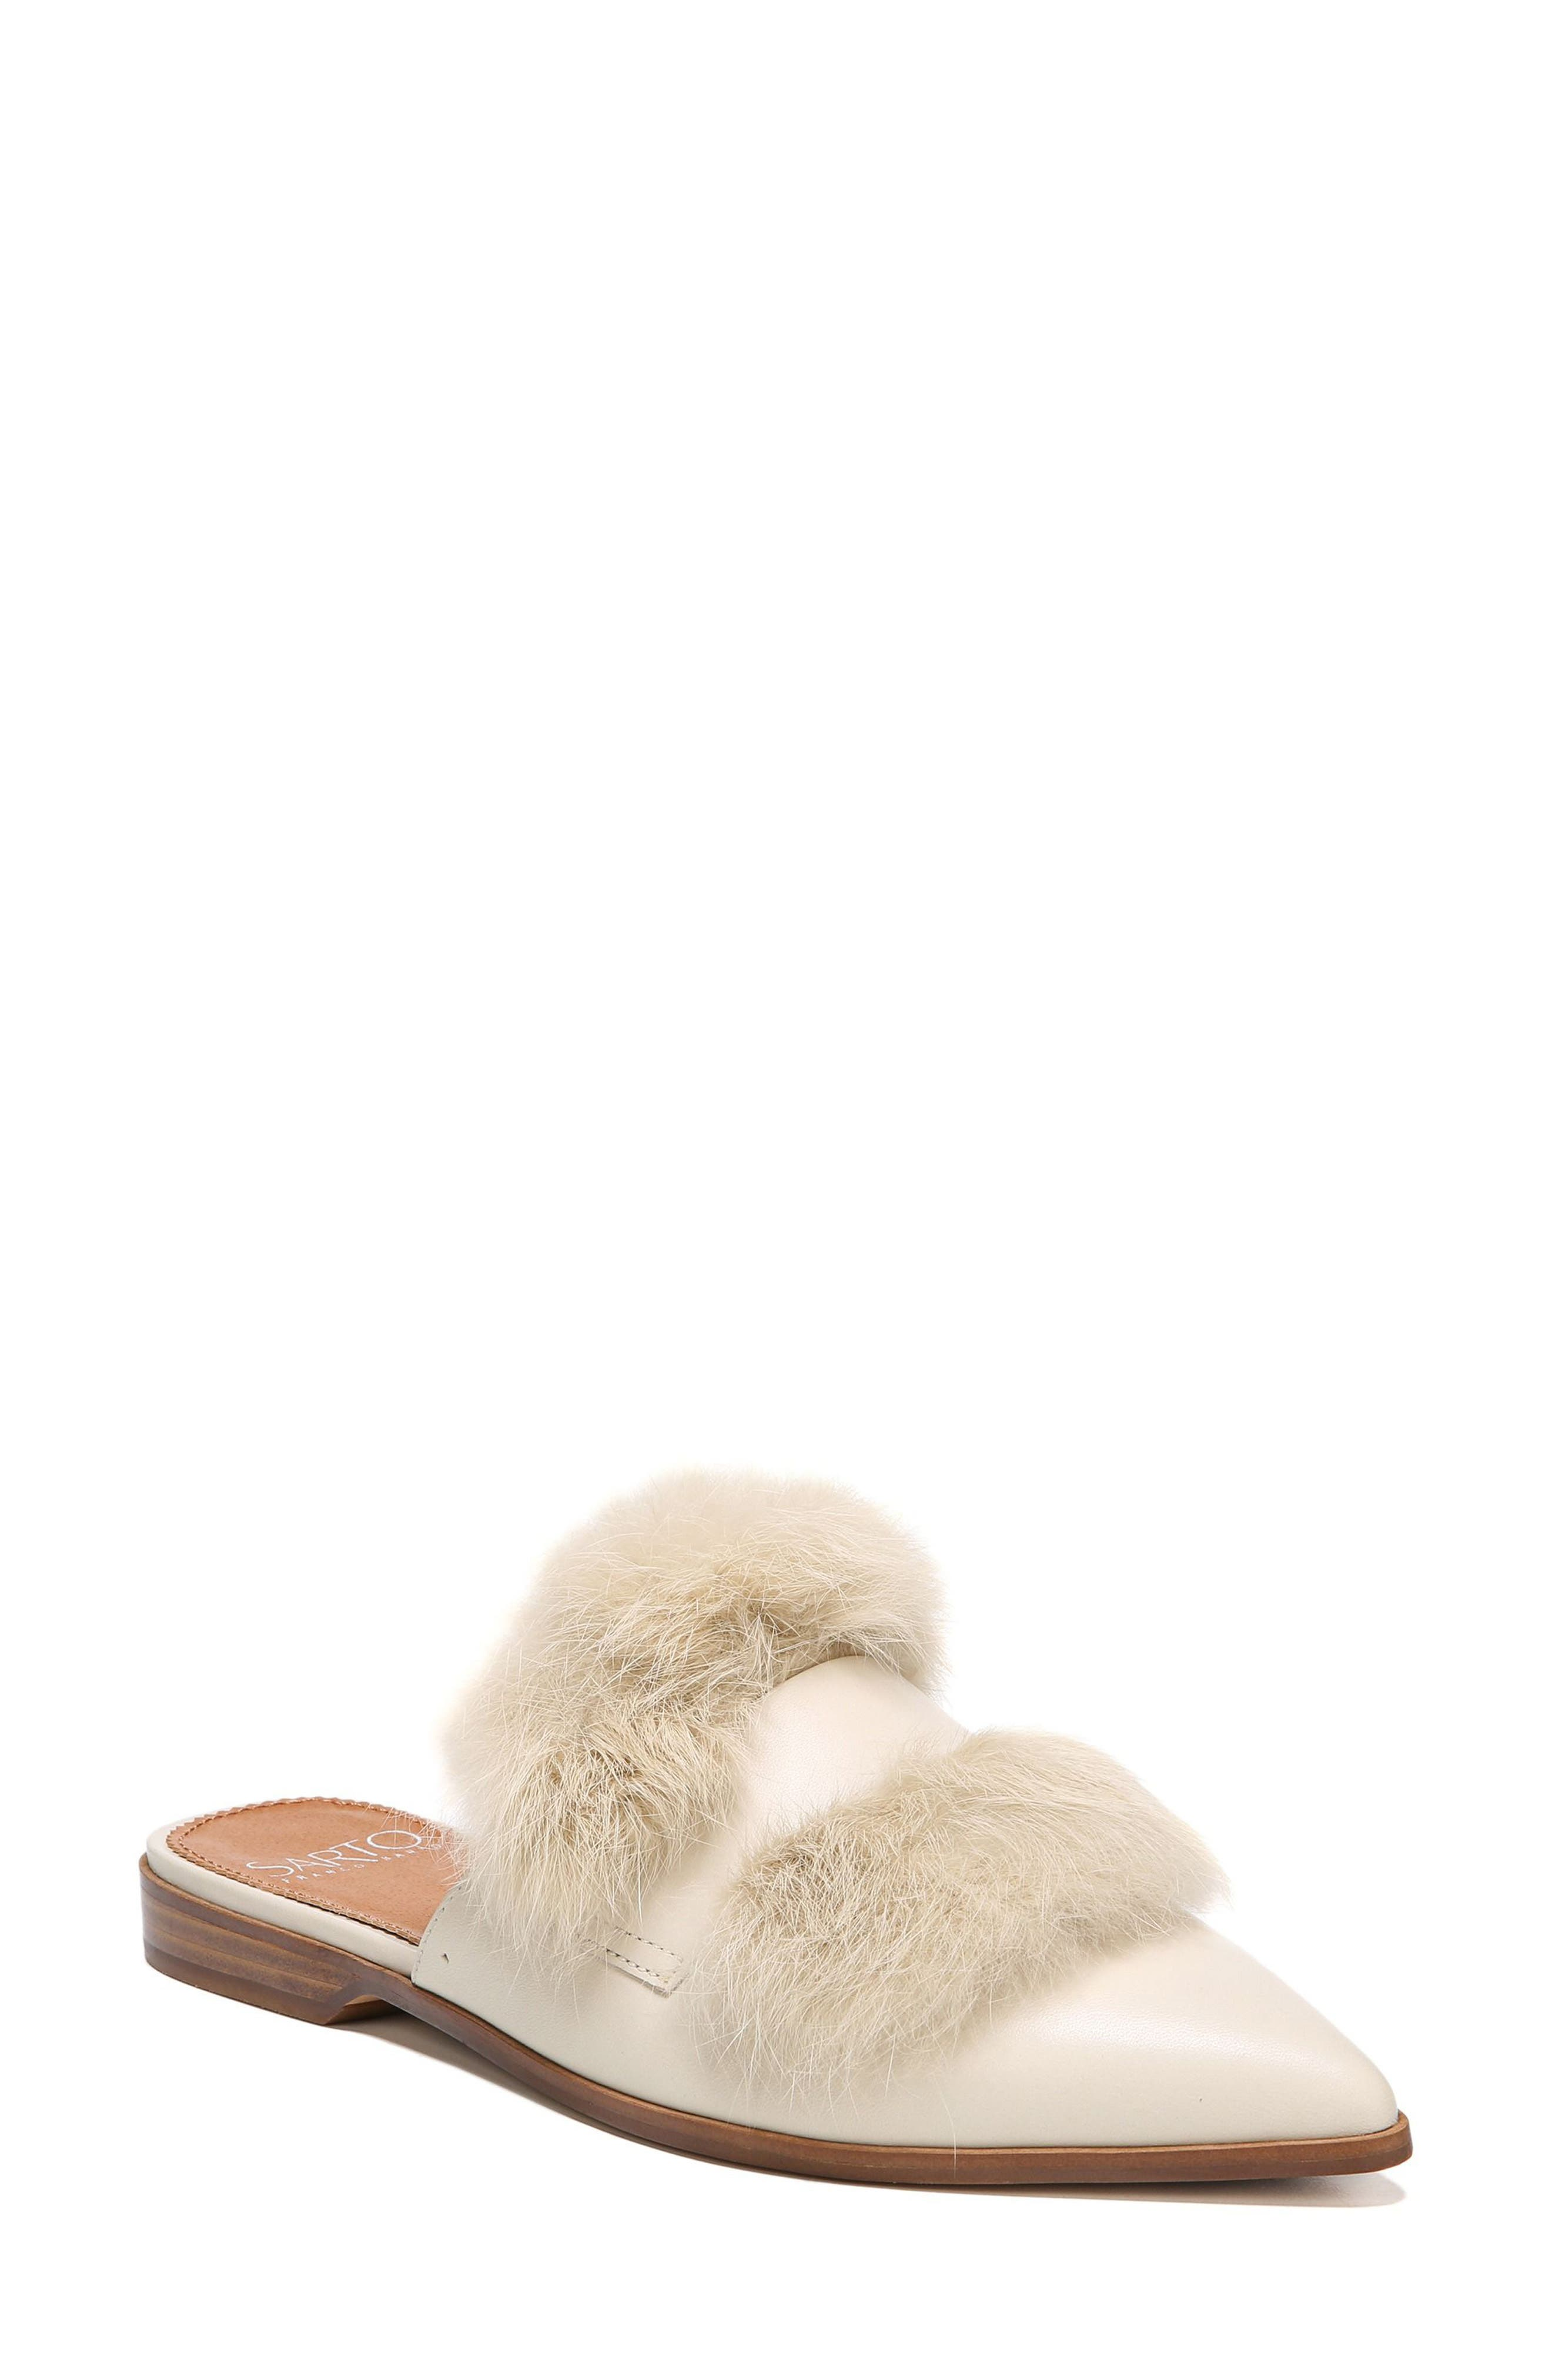 Palmer II Genuine Rabbit Fur Slide,                         Main,                         color, Winter White Leather